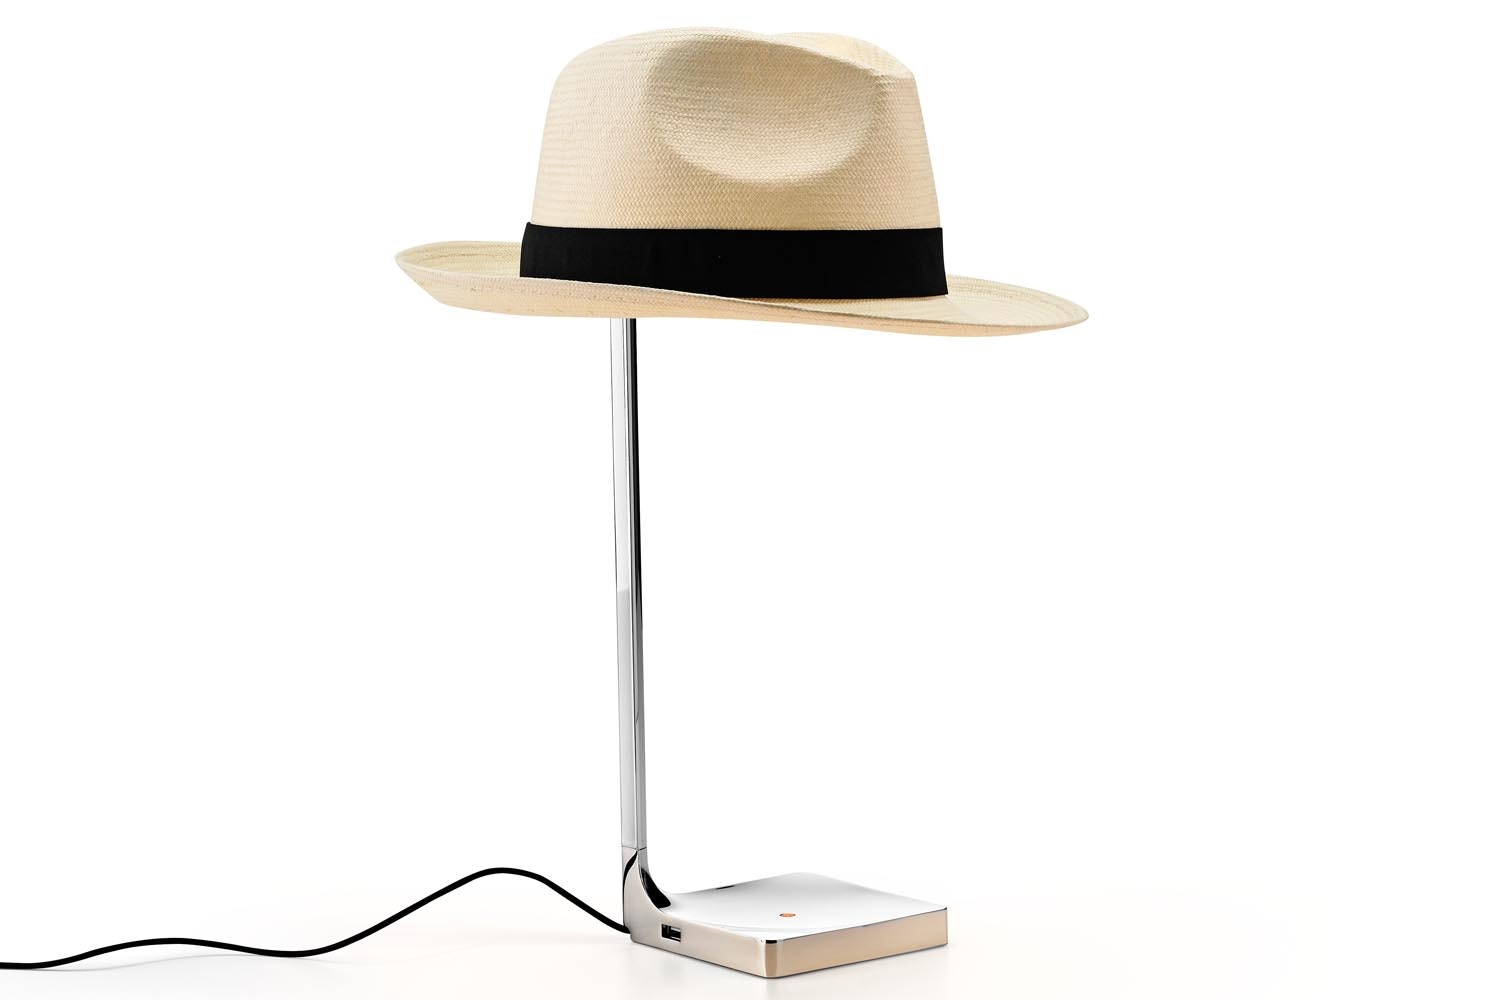 Chapeau by Philippe Starck for Flos